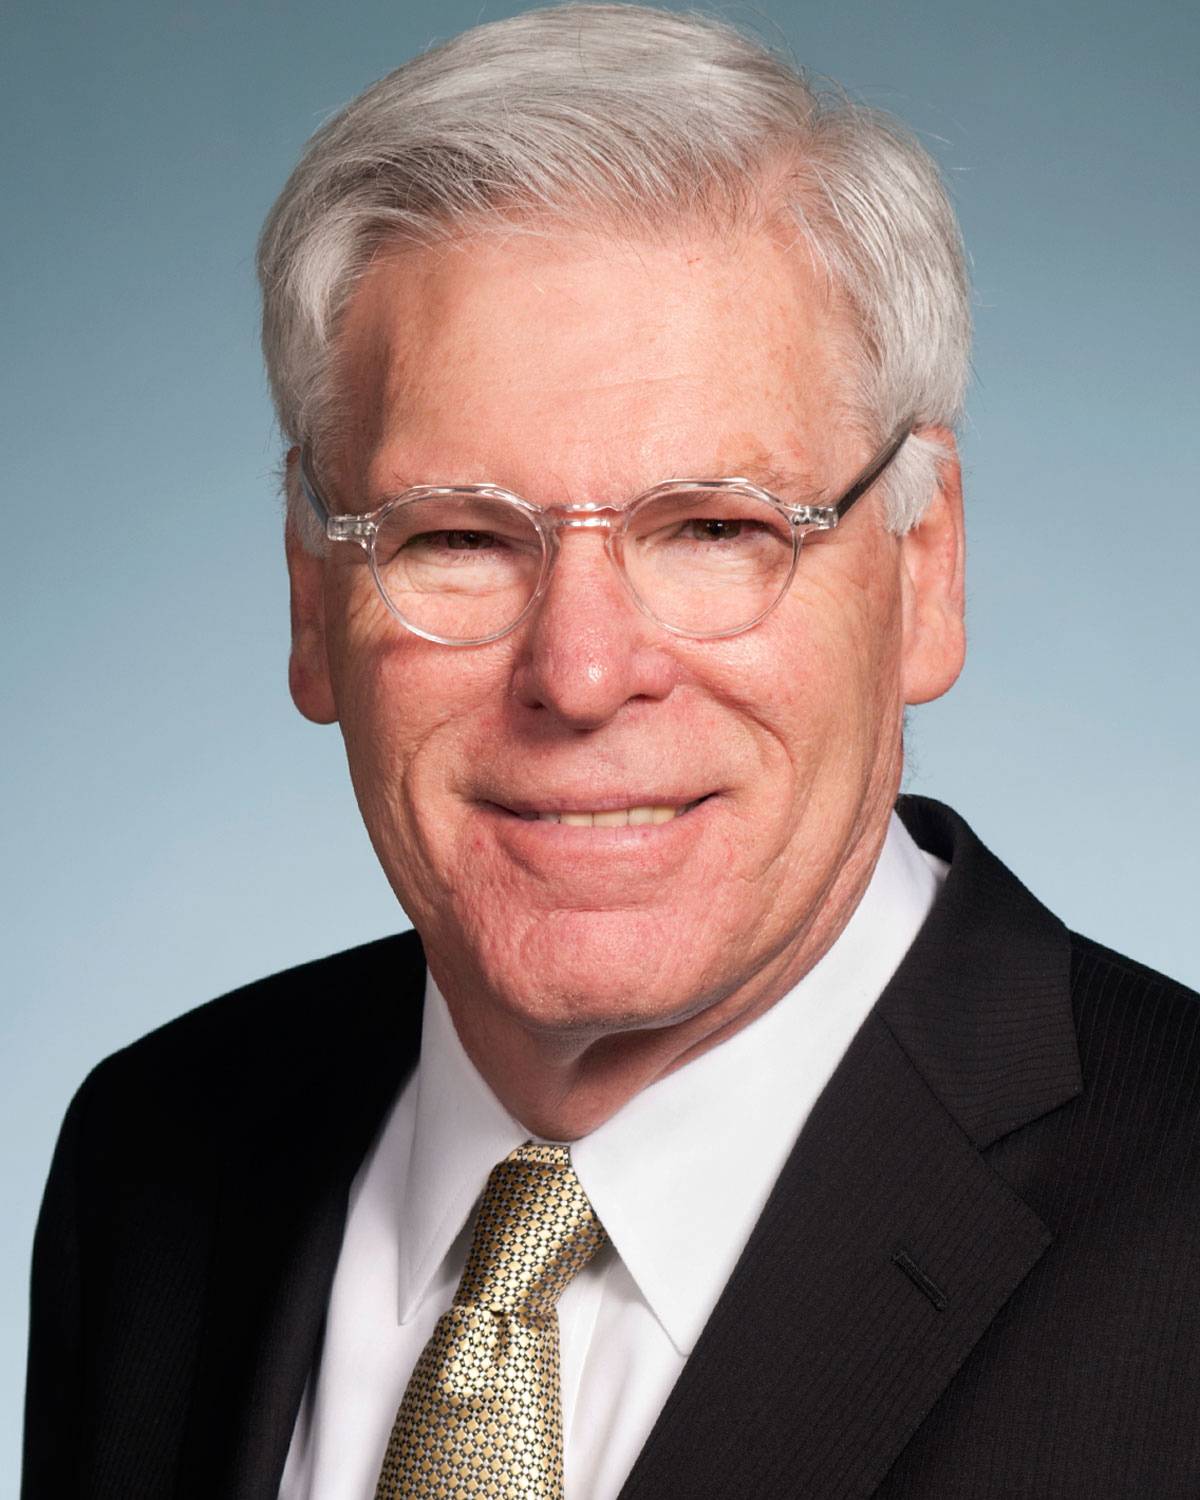 David F. Simon, JD